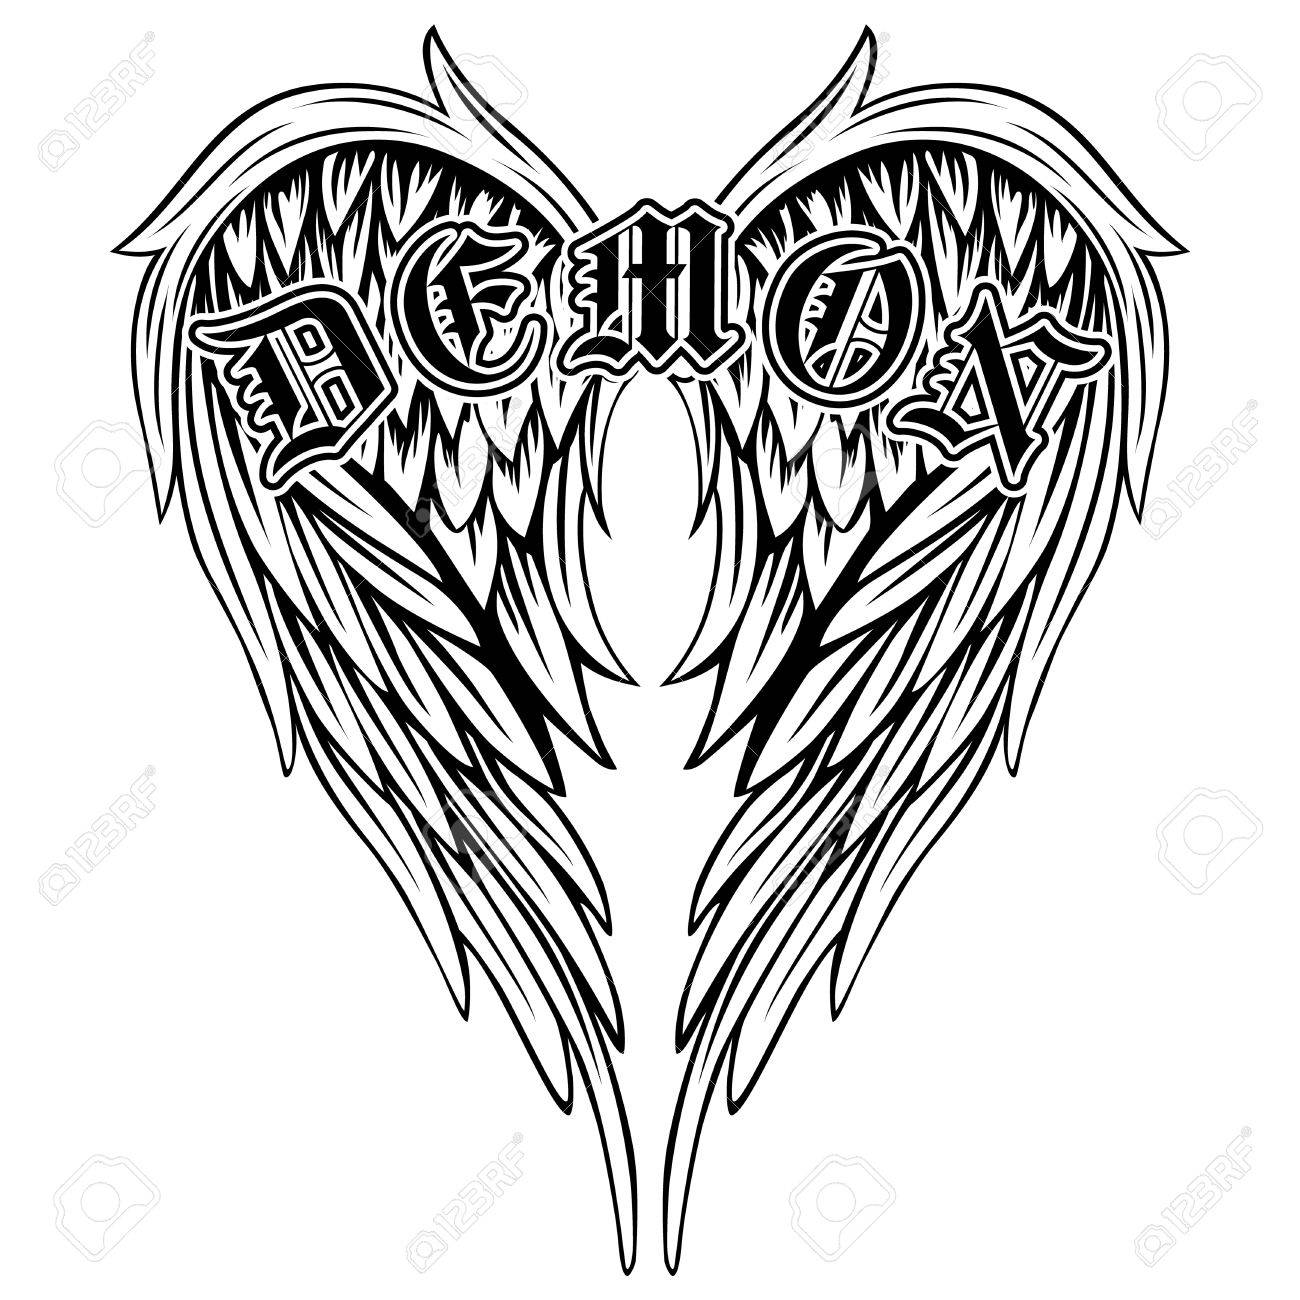 1300x1300 Abstract Vector Illustration Black And White Wings And Inscription